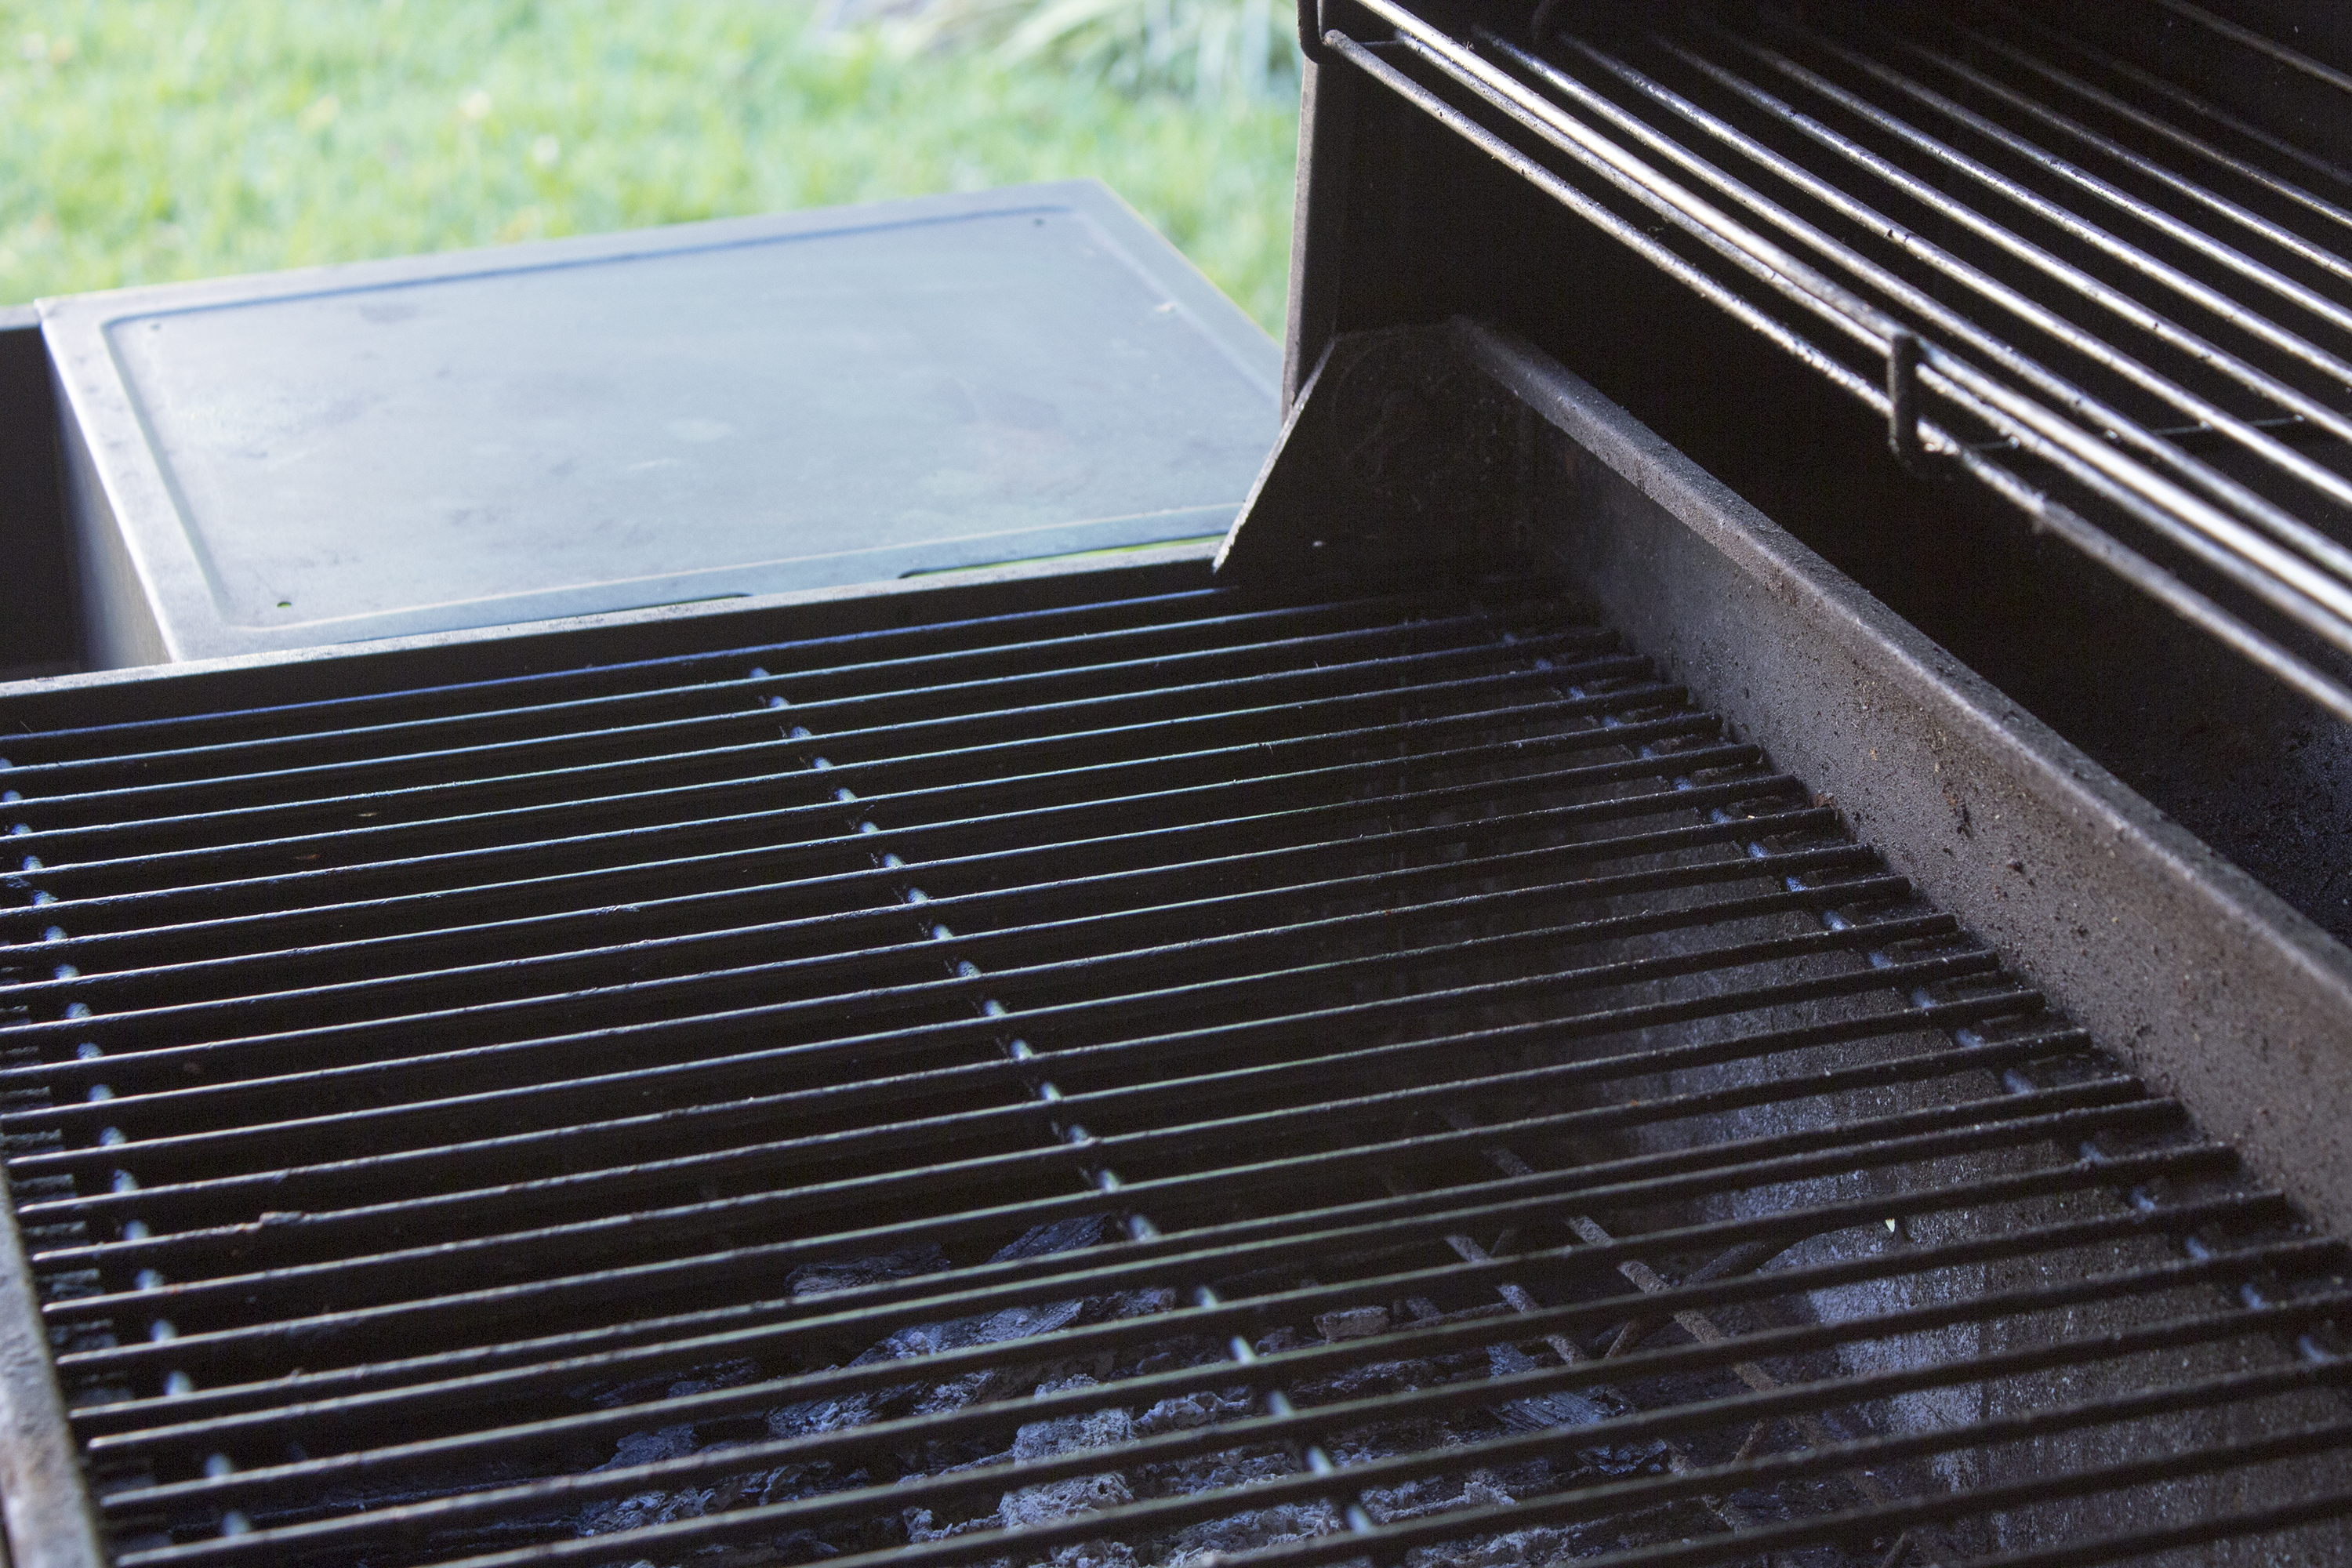 How to season cast iron grill grates home guides sf gate dailygadgetfo Image collections